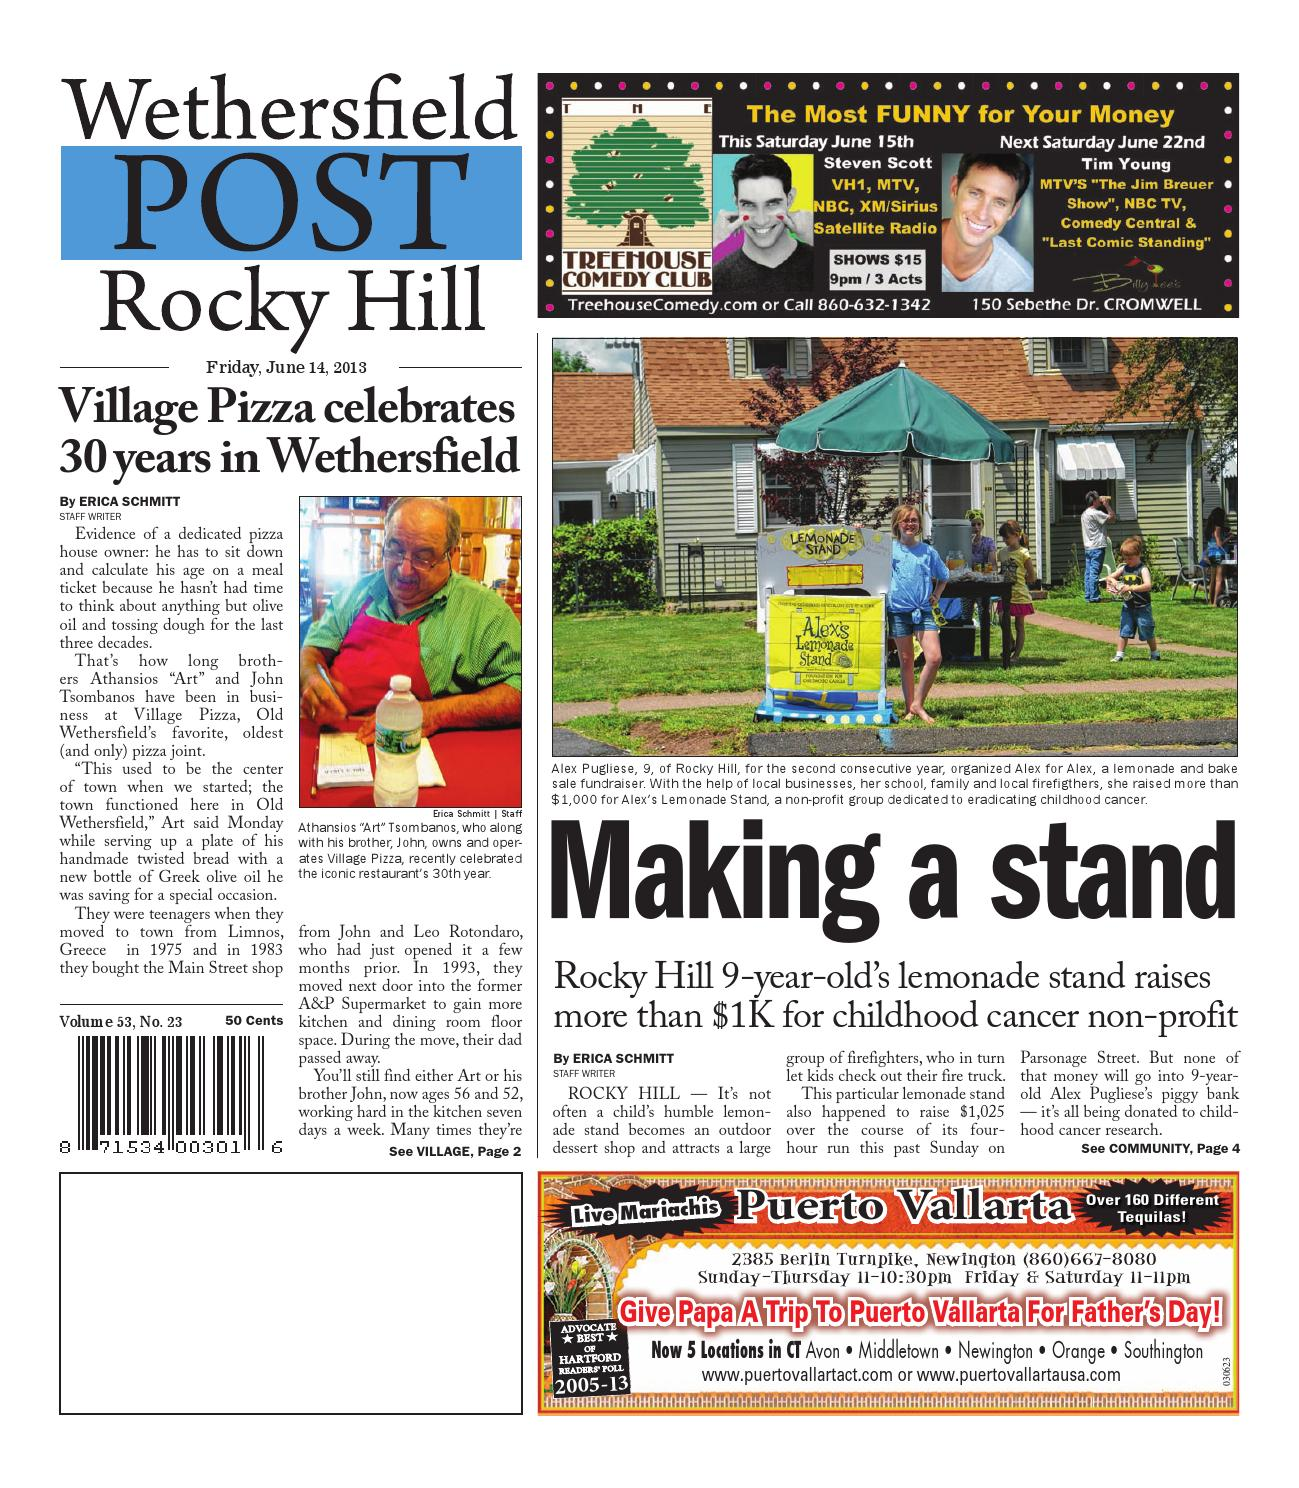 28d9357de97 Wethersfield Post - Rocky Hill Post 06-14-2013 by Art Department - issuu